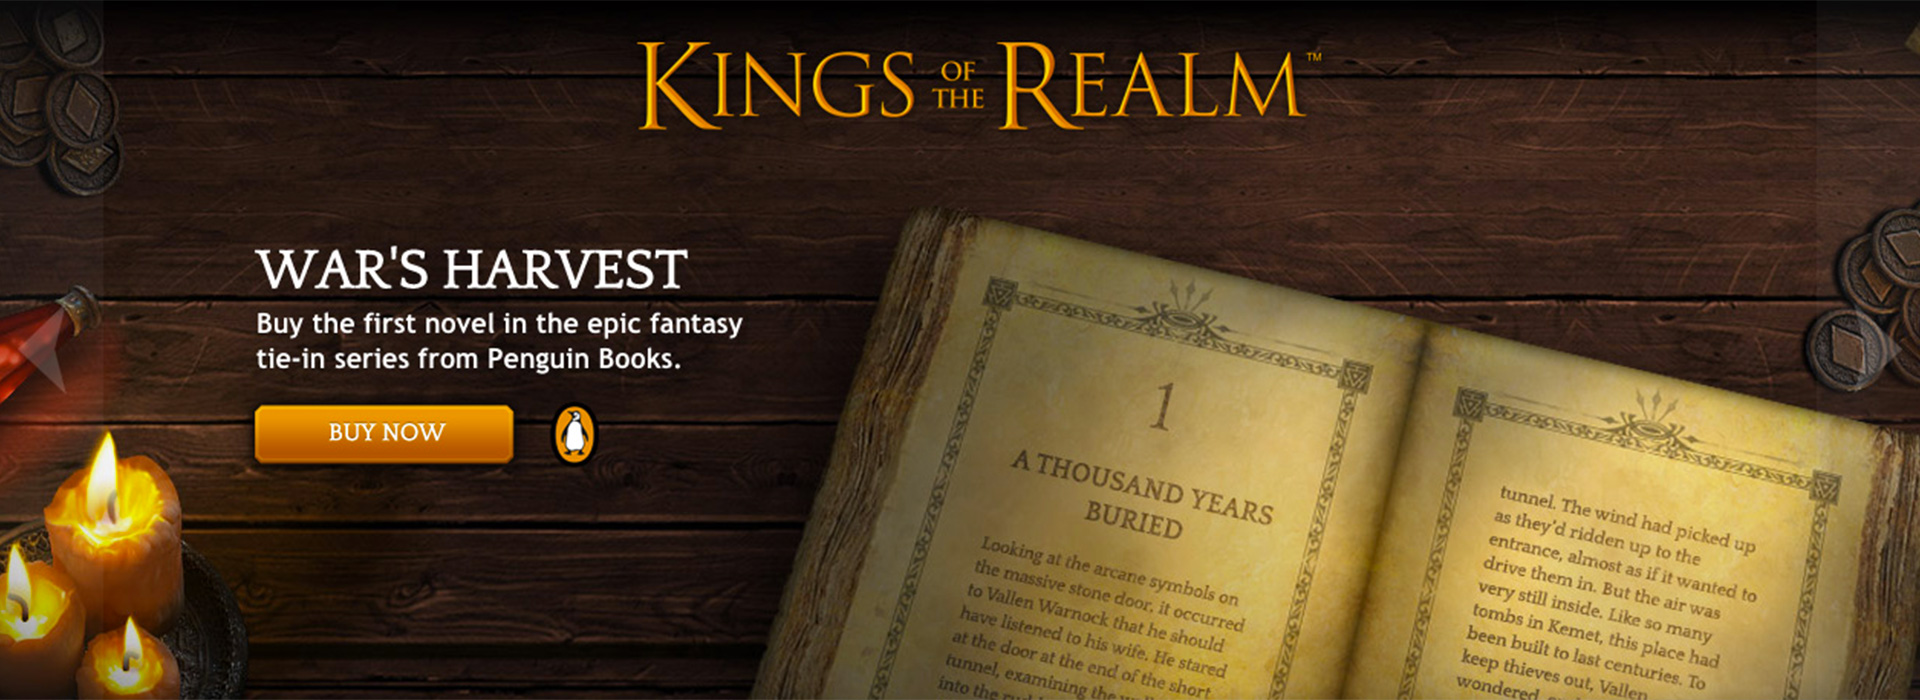 Kings of the Realm Book